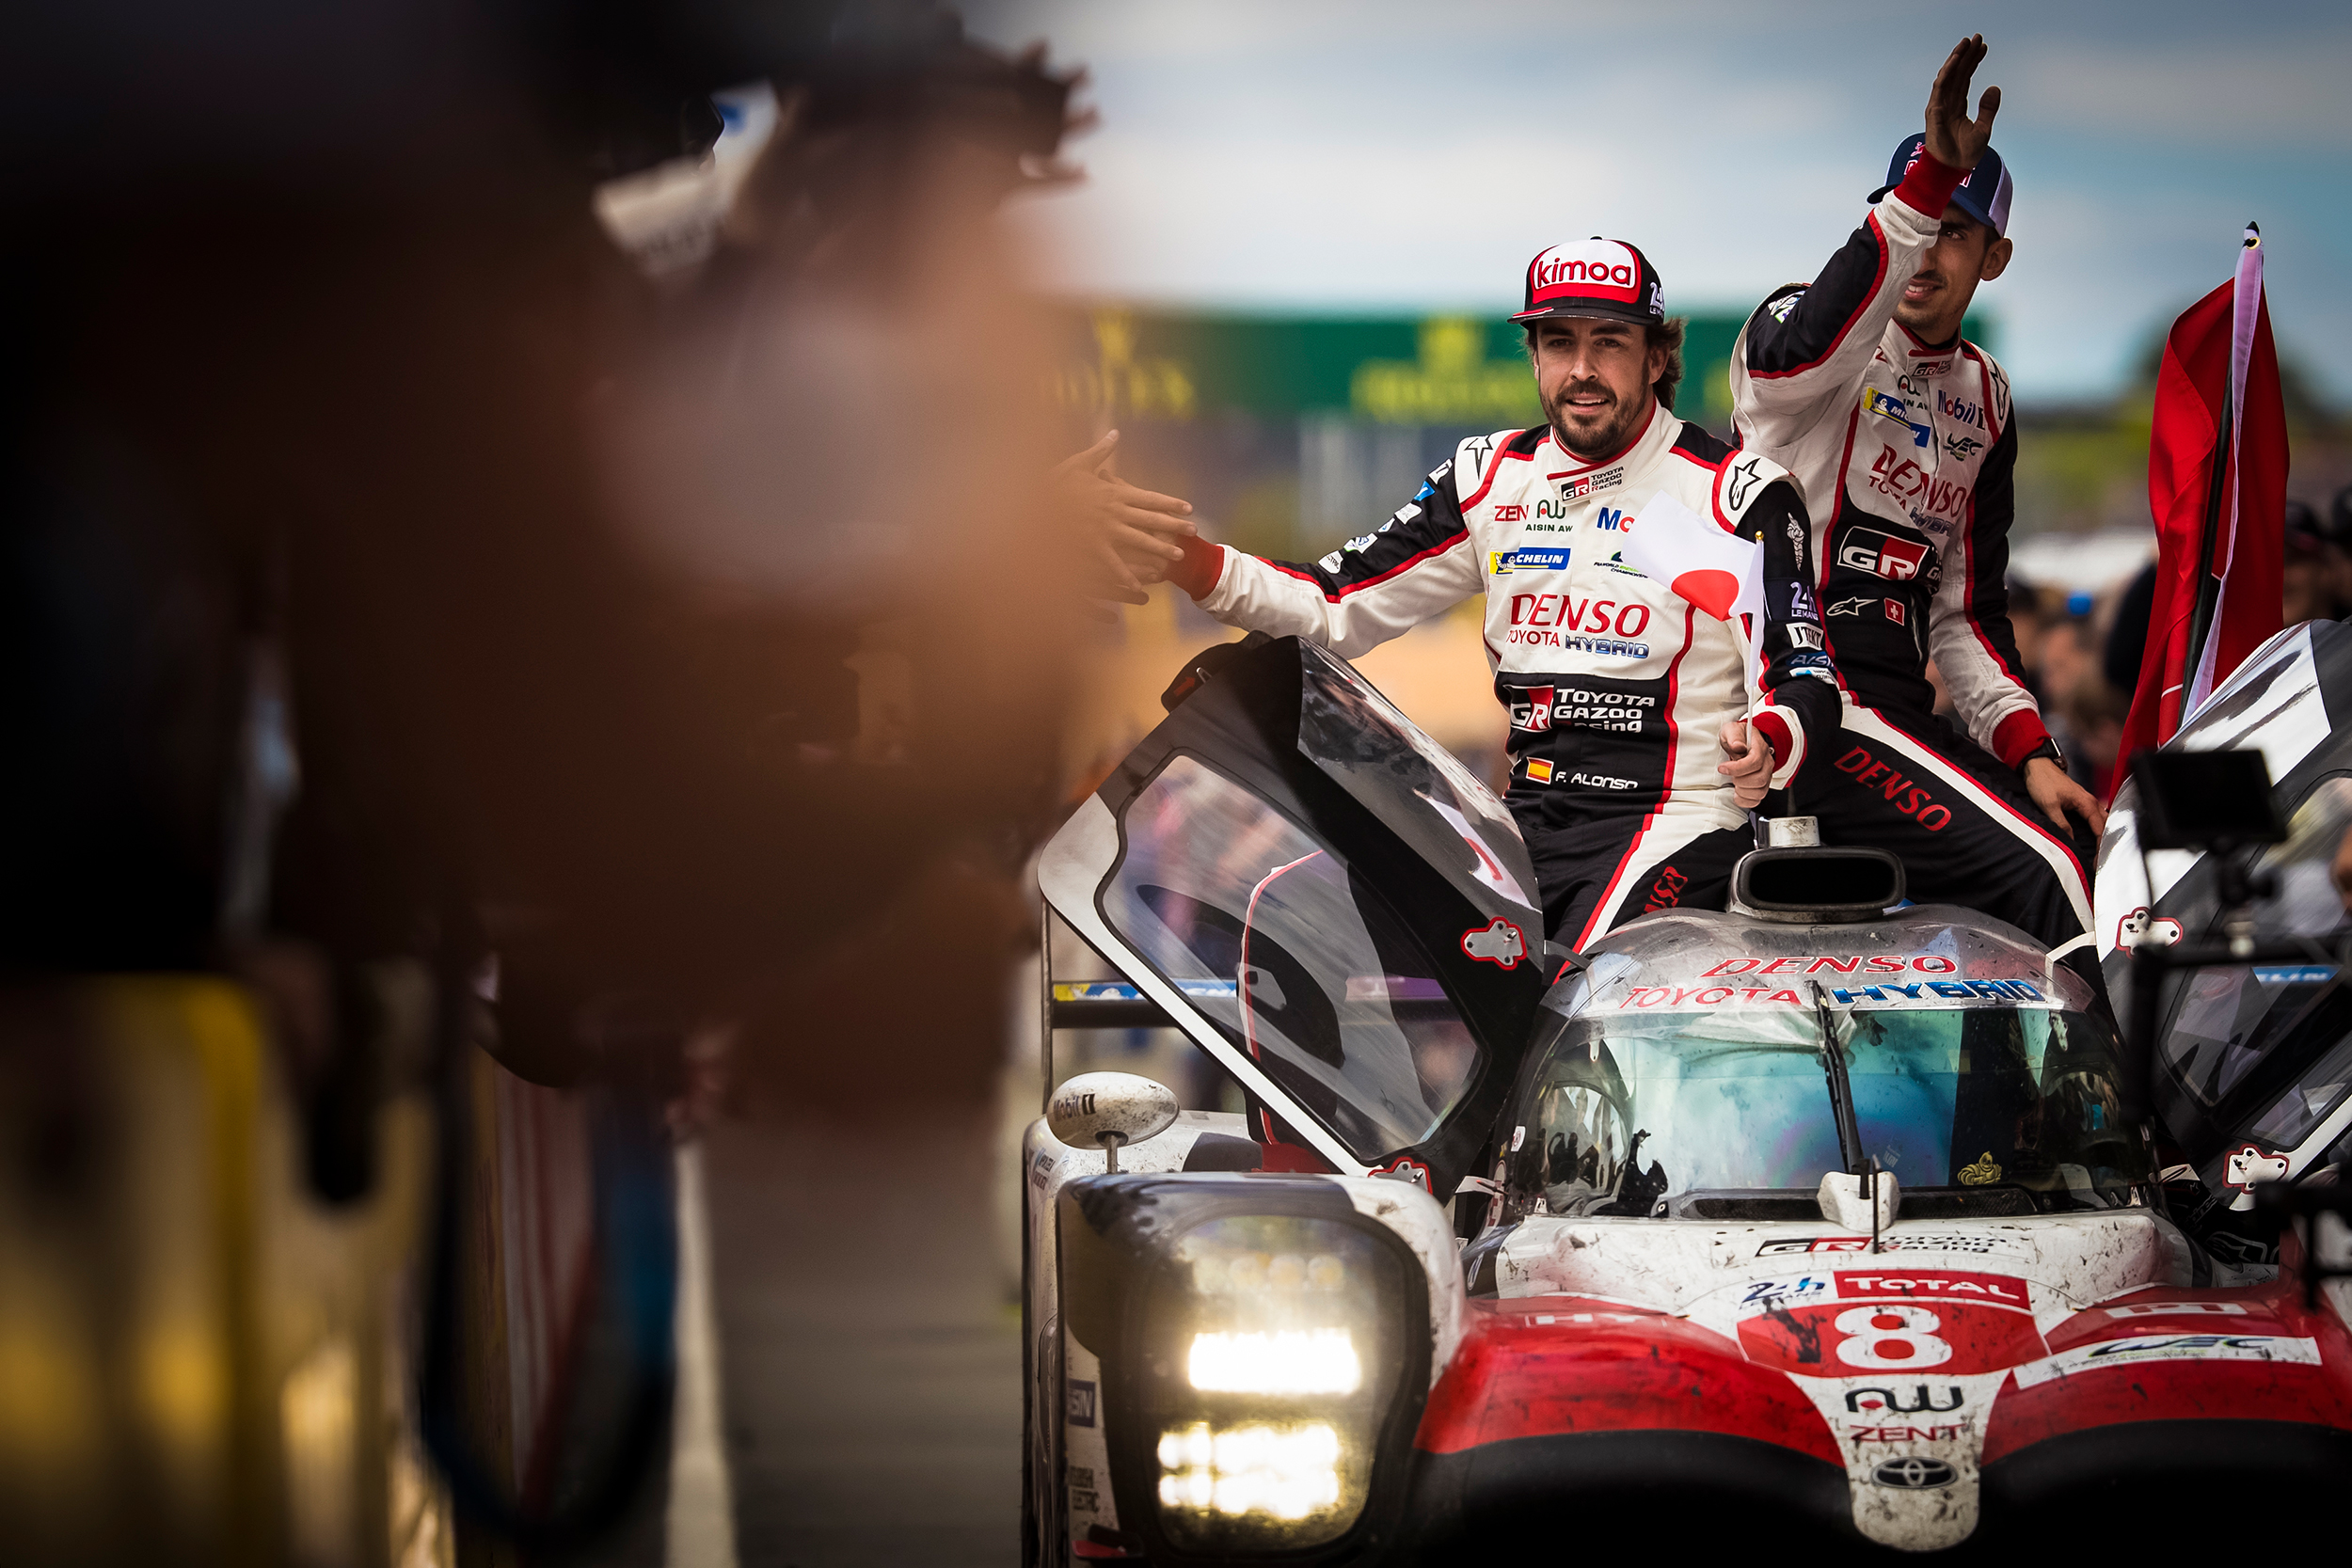 The Le Mans 24 Hours